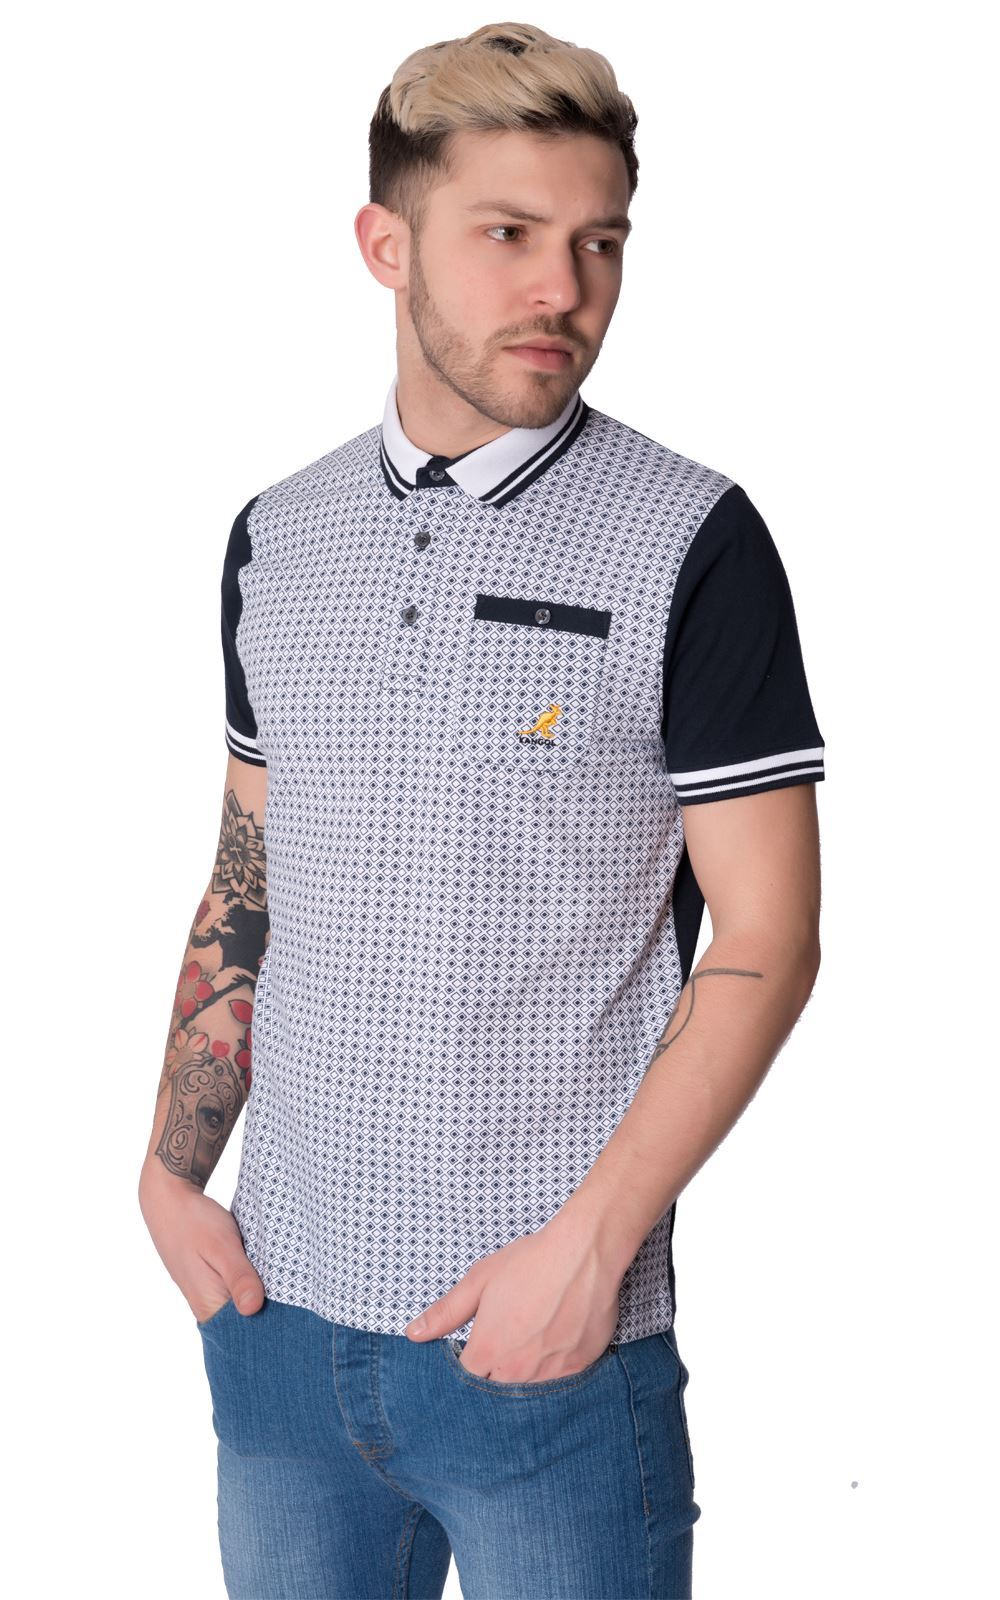 Mens Latest Short Sleeve Regular Fit Polo Shirt Tee Top By